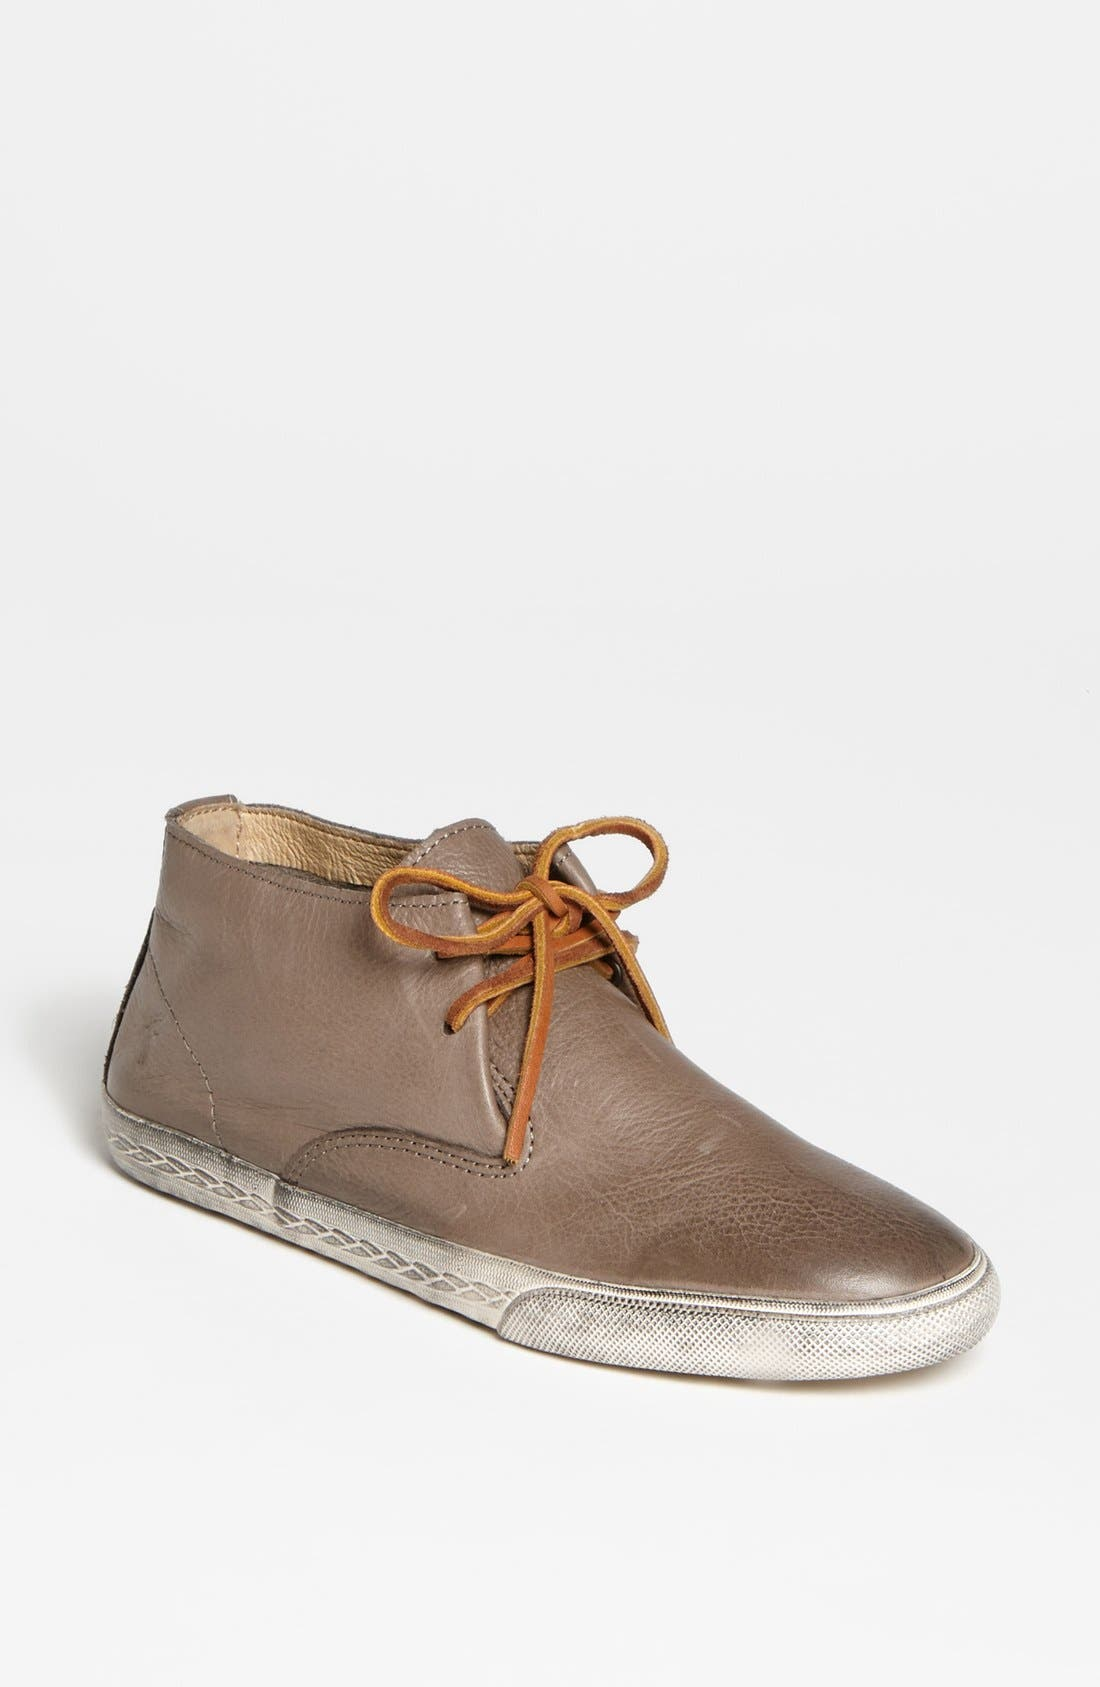 Alternate Image 1 Selected - Frye 'Mindy - Chukka' Sneaker